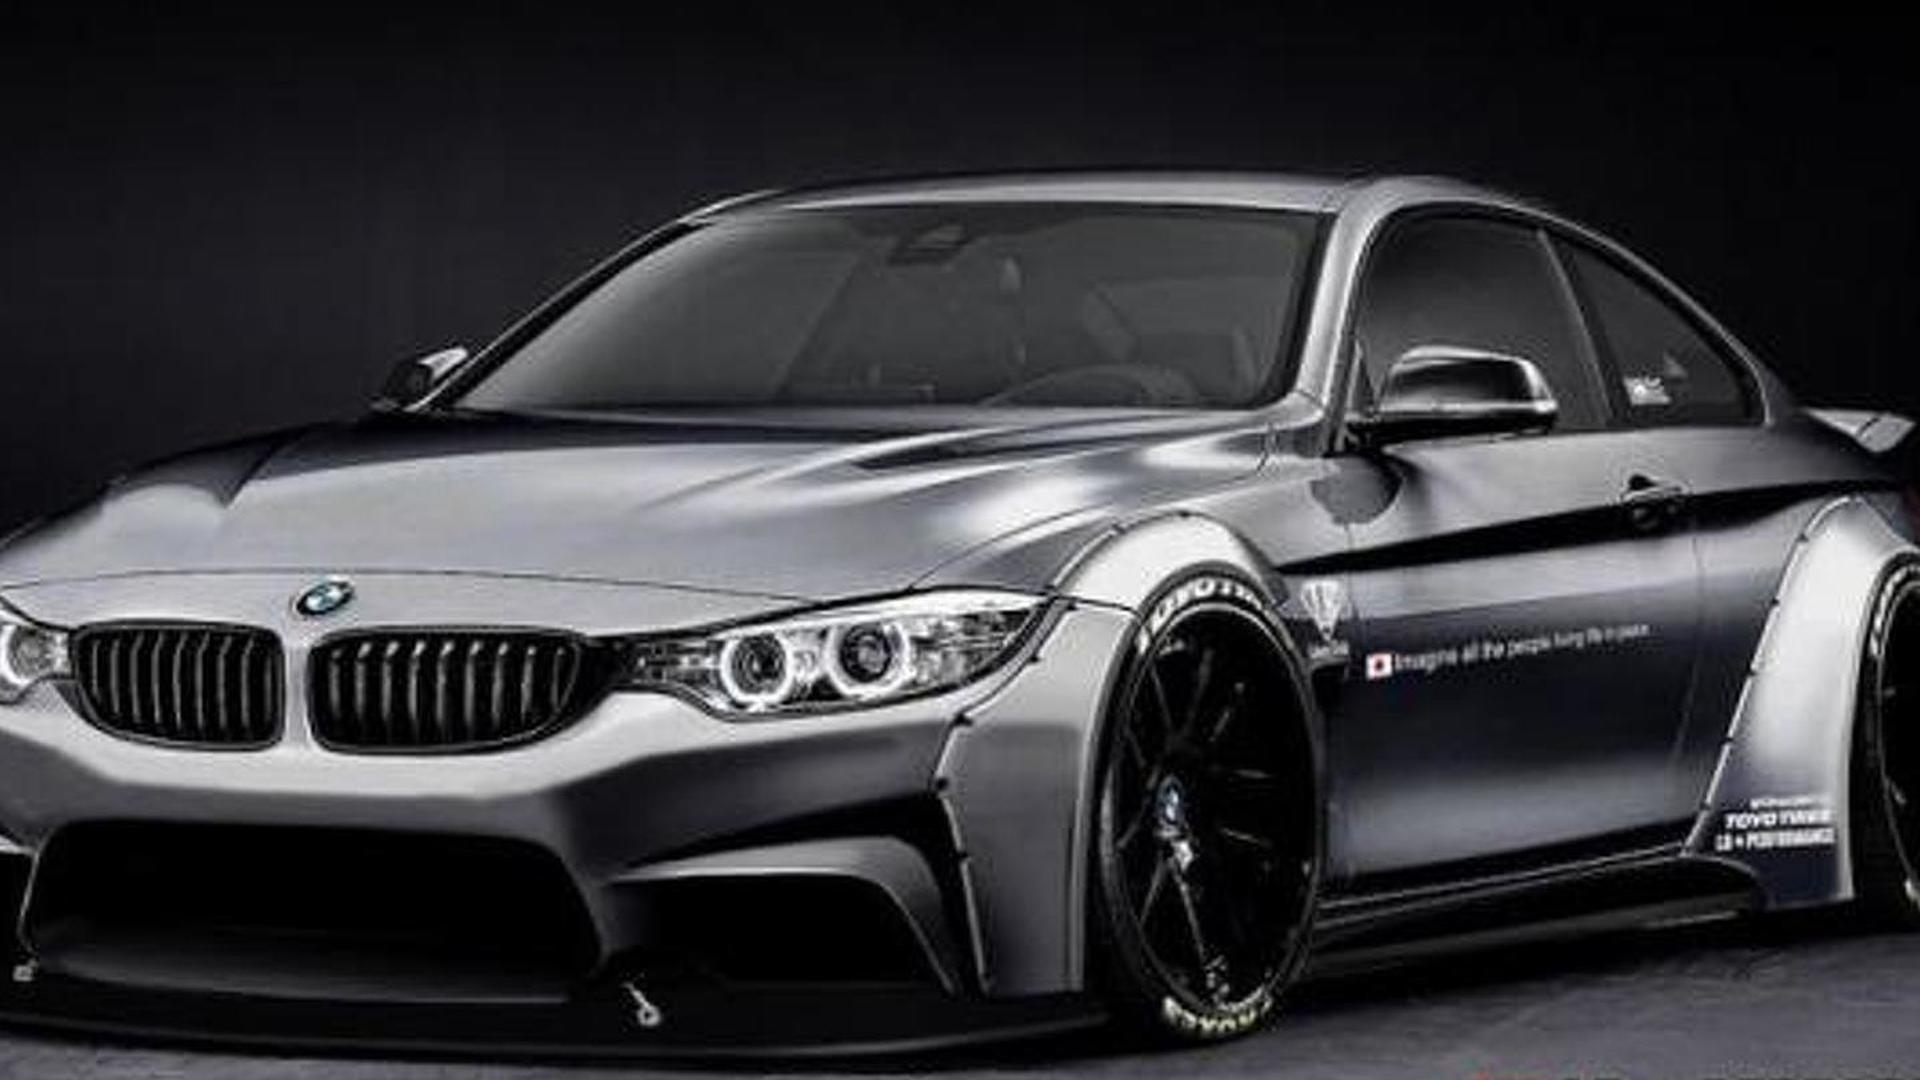 Liberty Walk fattens up BMW 4-Series Coupe with wide body kit